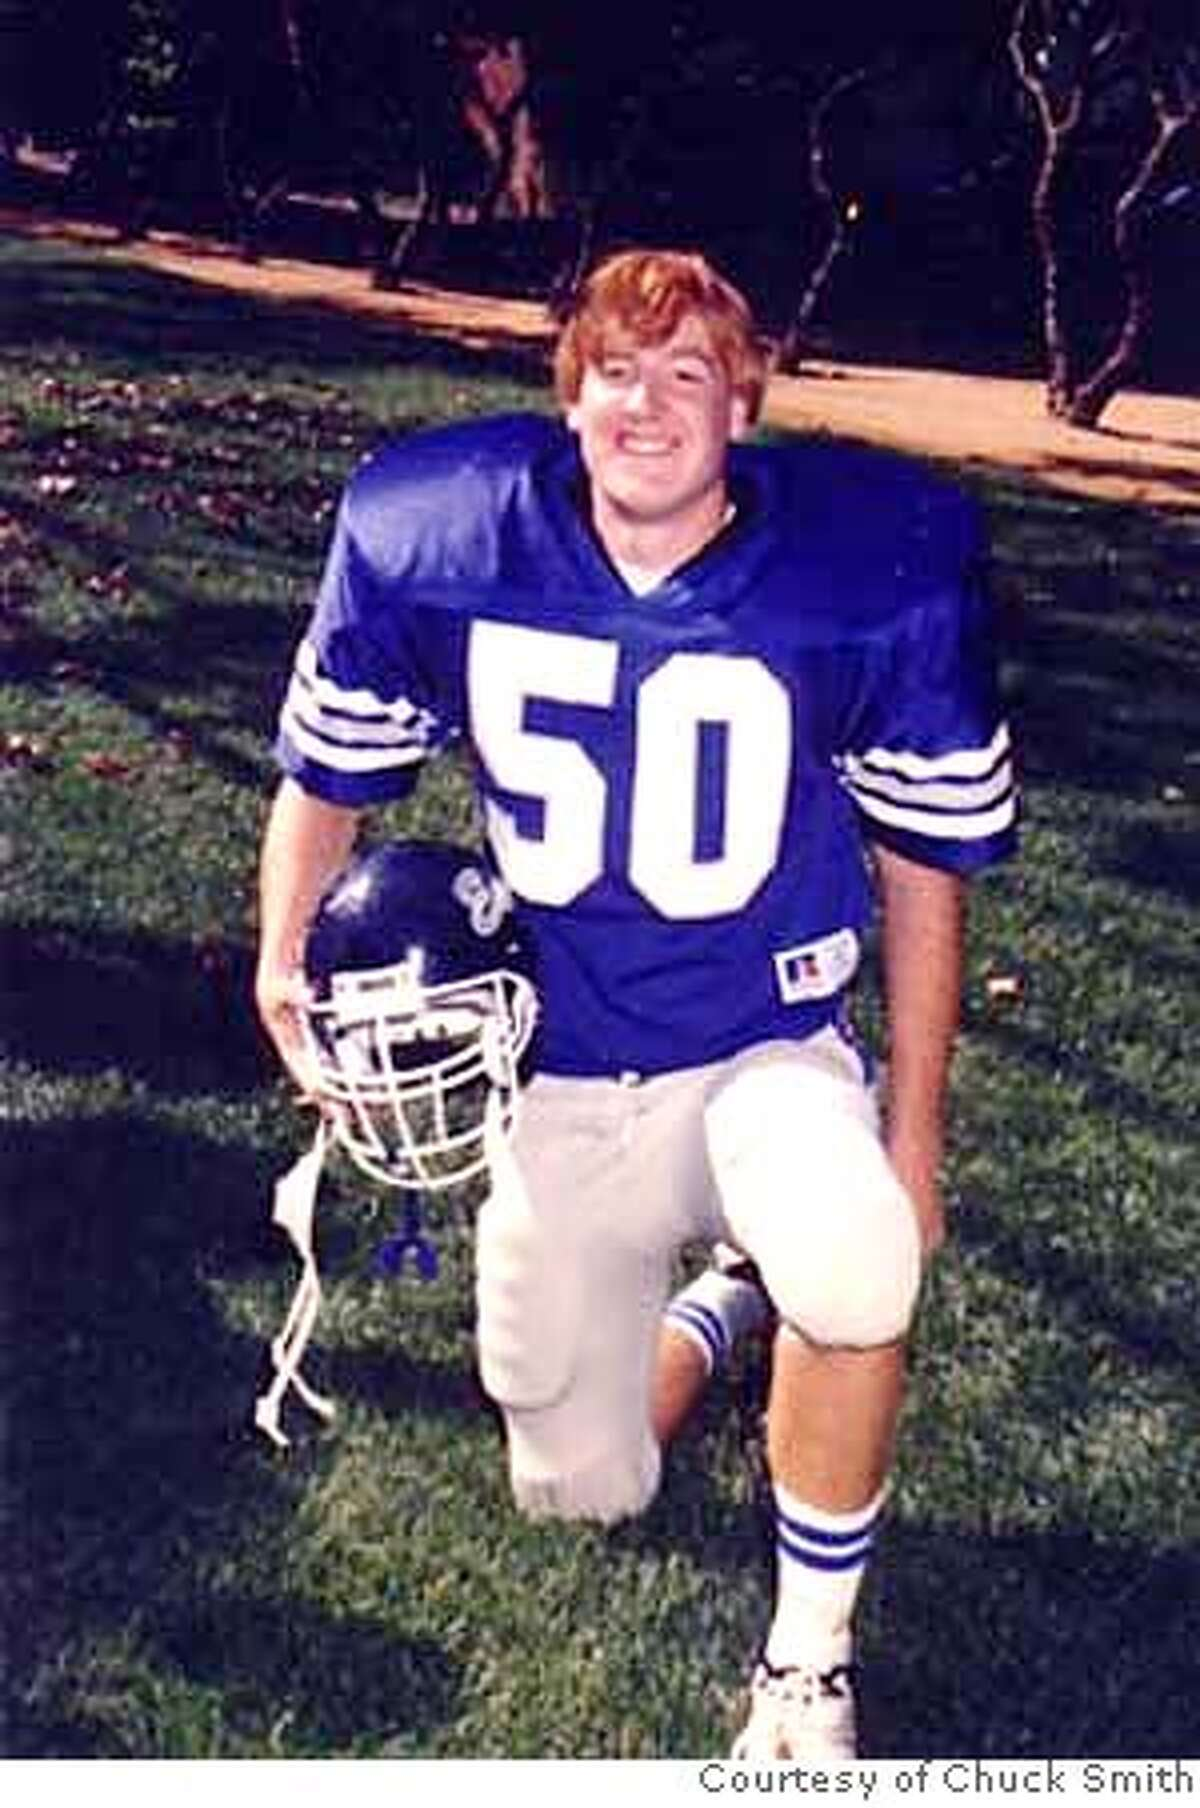 Capt. Sargent Binkley as a football player in high school. Picture is from August of 1992. Booking mug for Capt. Sargent Binkley. Binkley, a former Army Ranger from Los Altos, faces a lengthy prison sentence for robbing two pharmacies of drugs at gunpoint in 2006. Photos Courtesy of Chuck Smith MANDATORY CREDIT FOR PHOTOG AND SAN FRANCISCO CHRONICLE/NO SALES-MAGS OUT